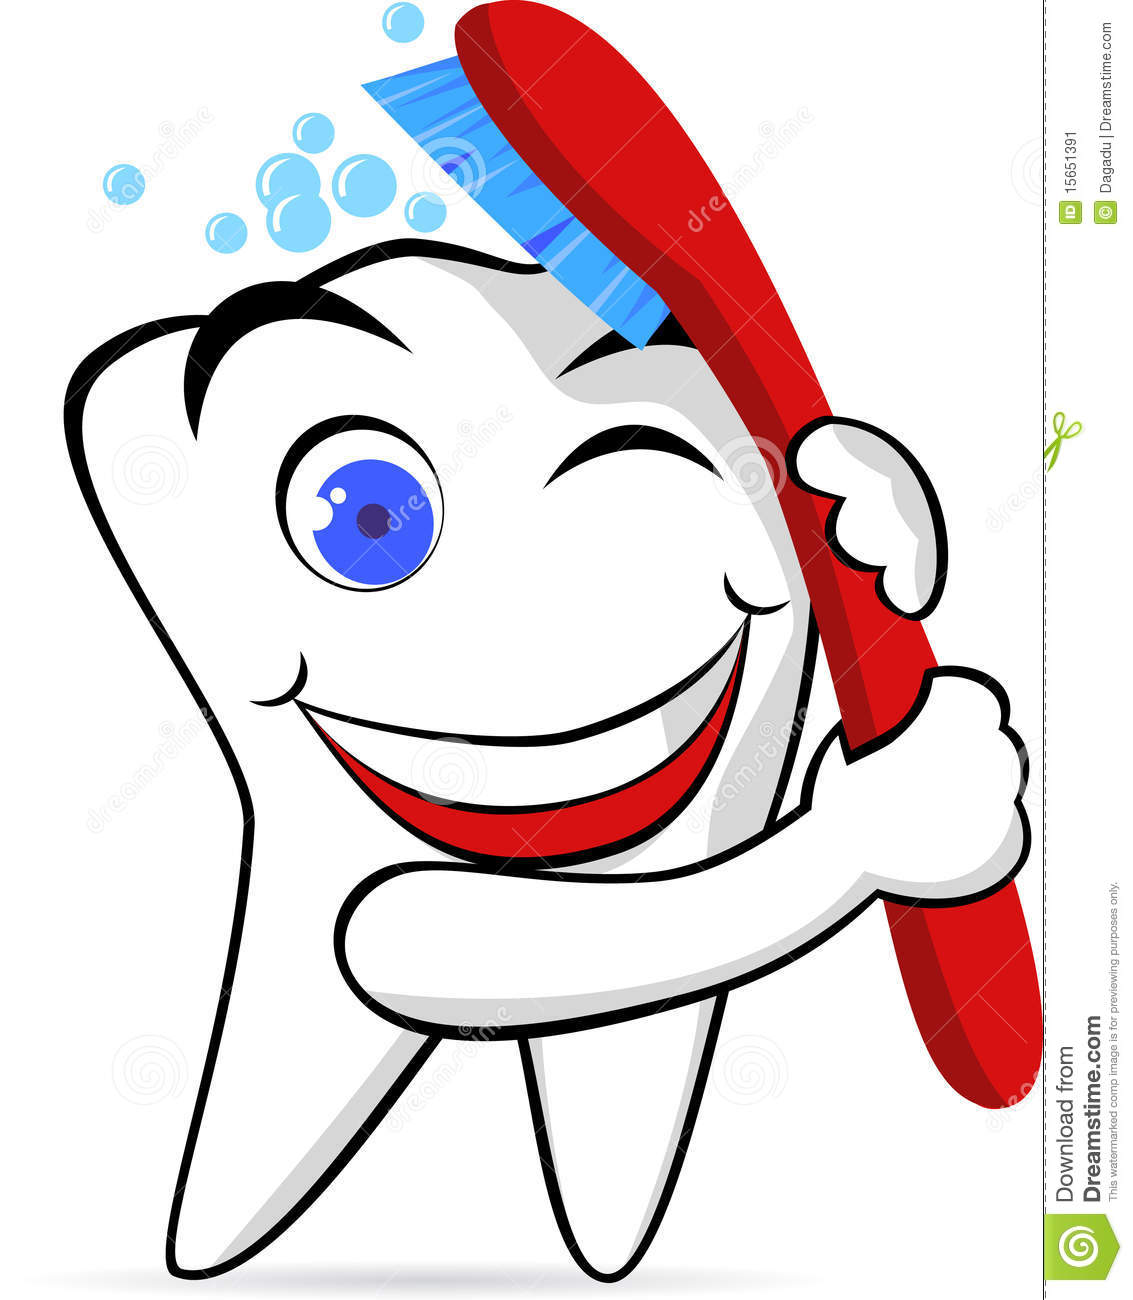 Happy tooth clipart graphic free library Happy Tooth Clip Art Related Keywords & Suggestions - Free Clipart graphic free library